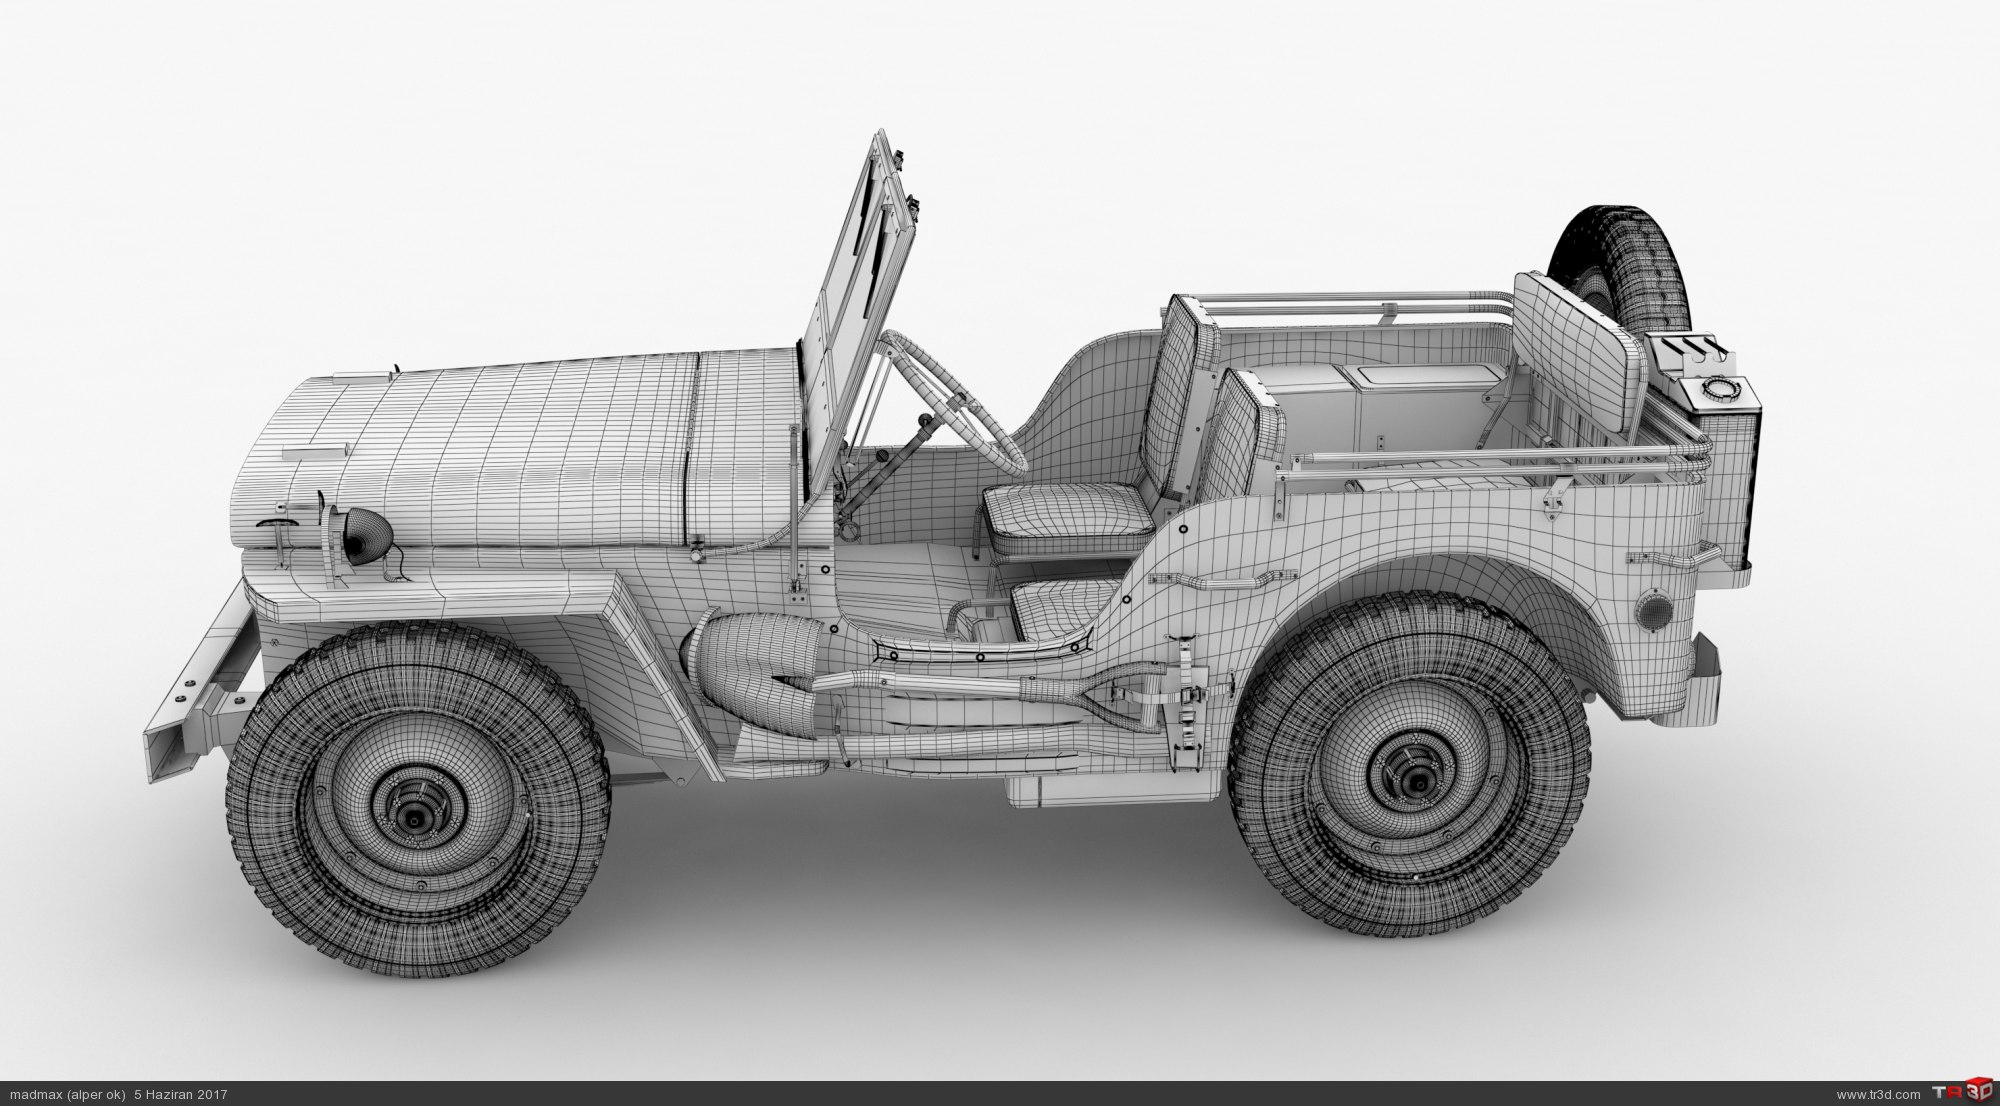 Willys Jeep MB 4